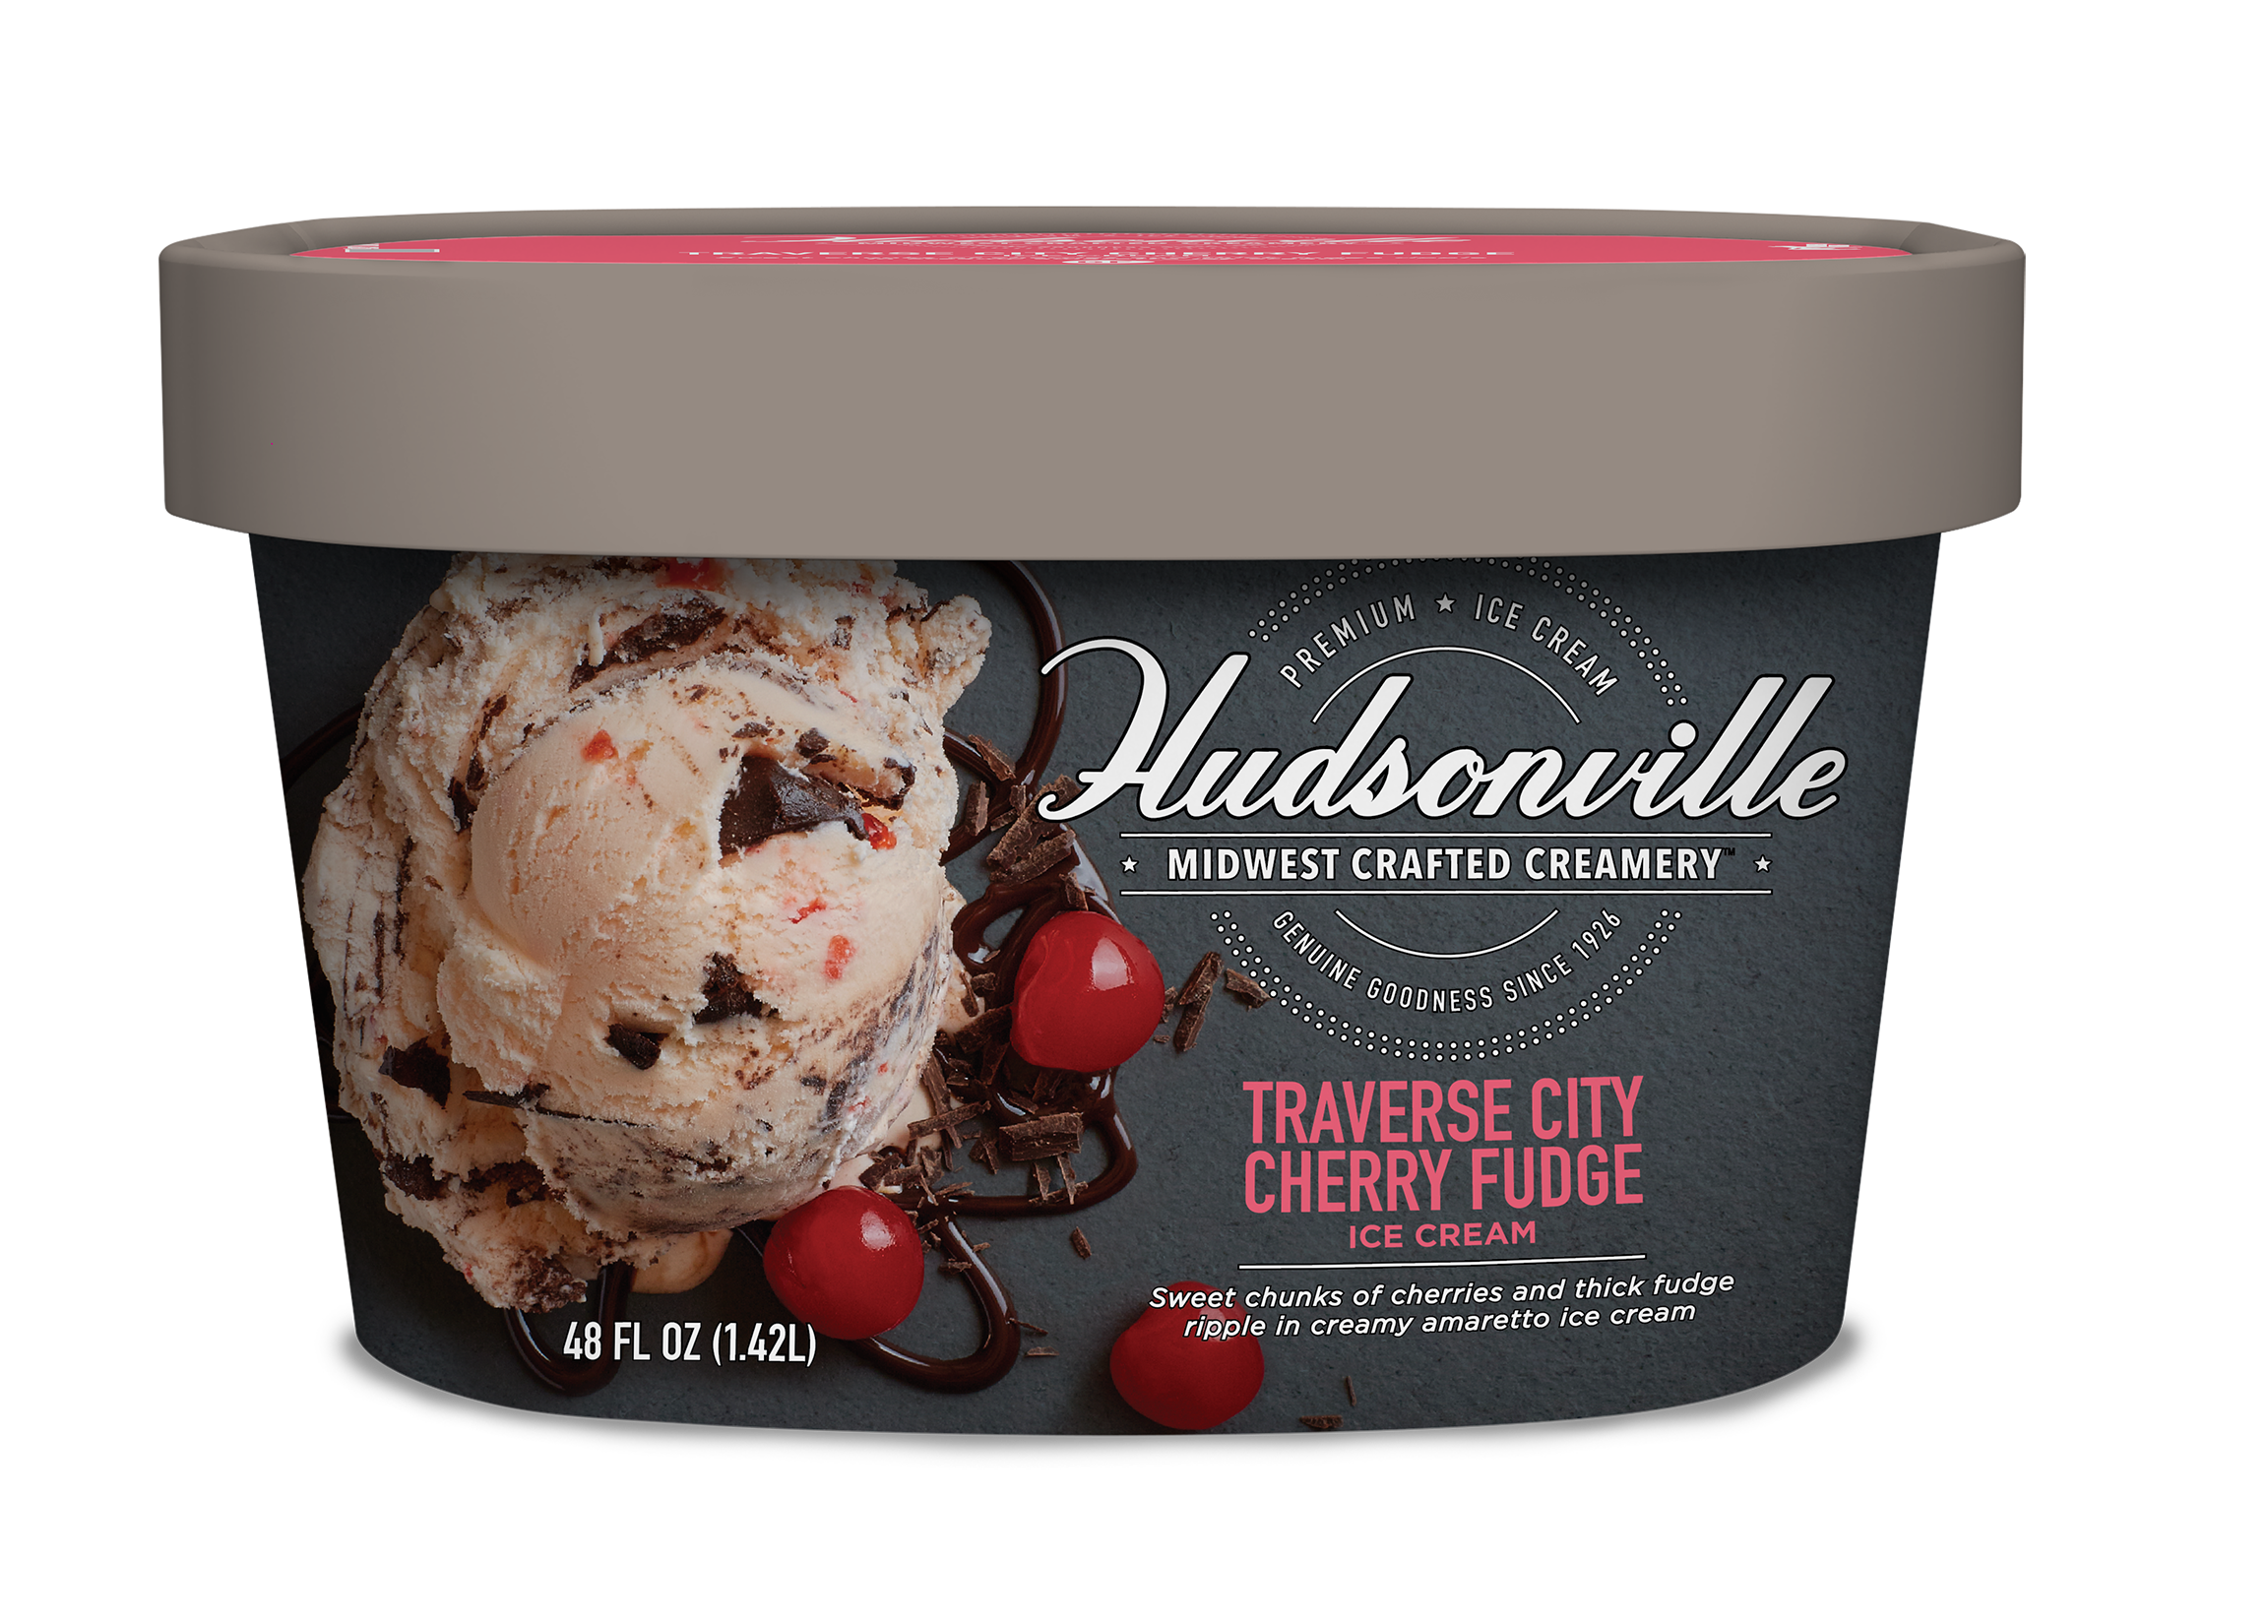 TRAVERSE CITY CHERRY FUDGE Carton